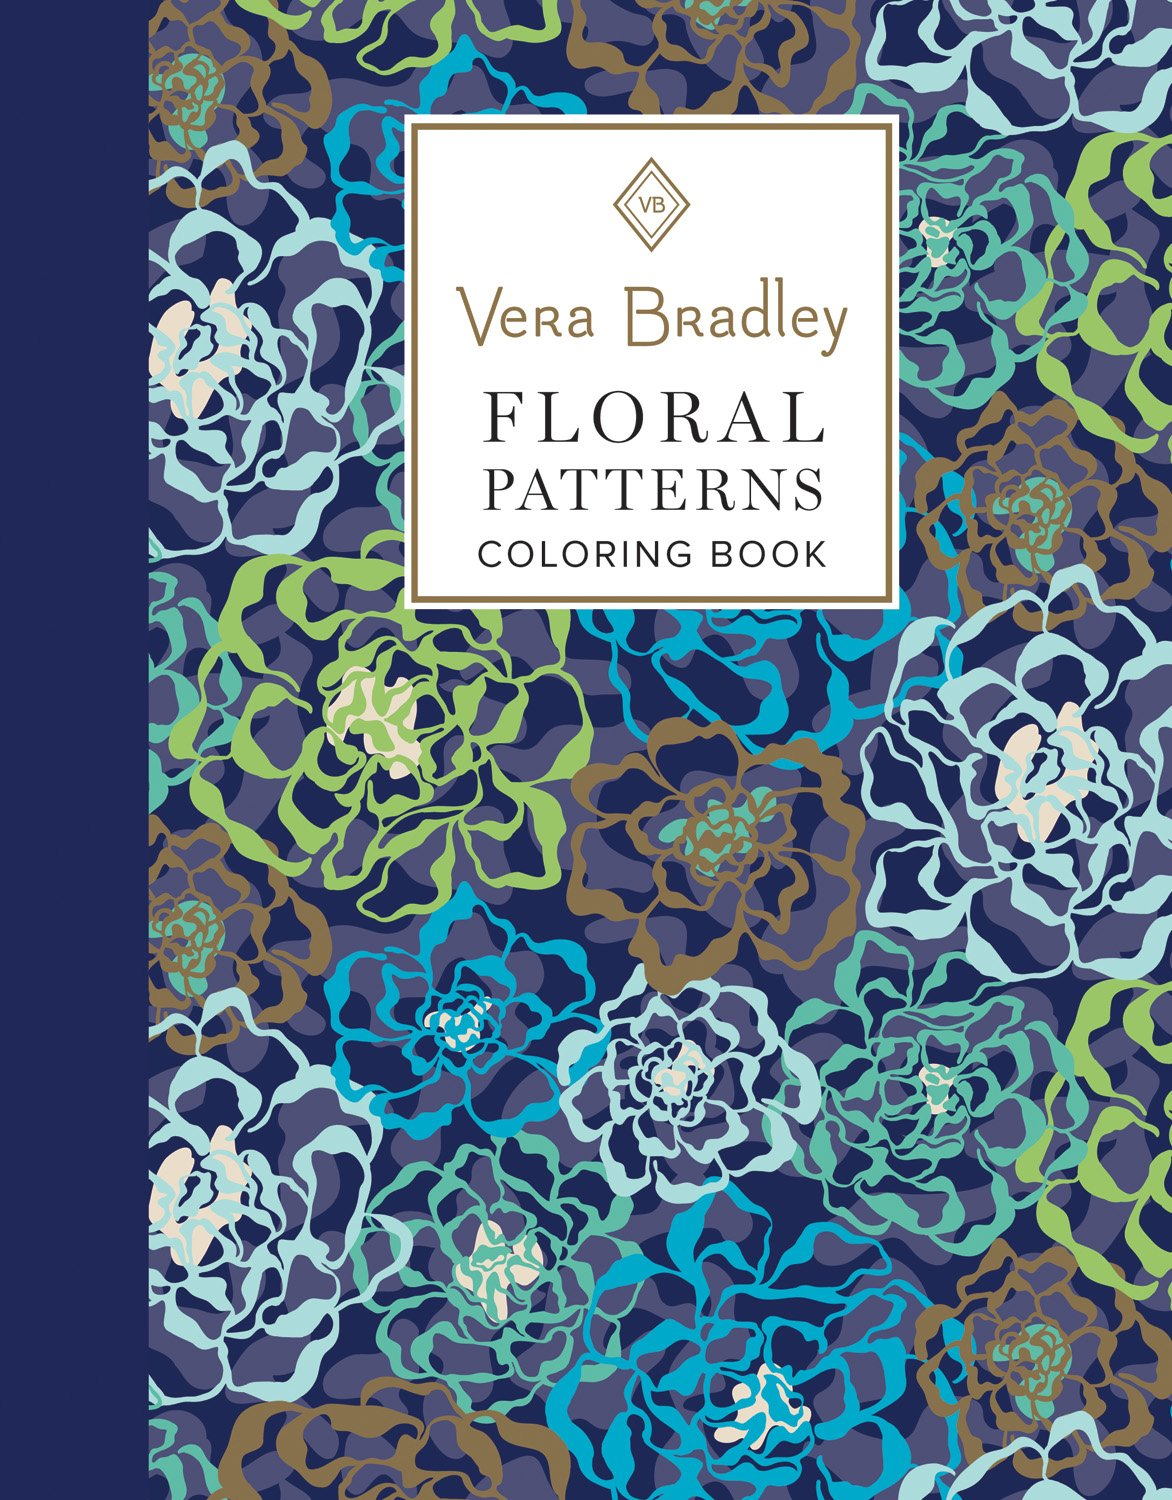 Amazon.com: Vera Bradley Floral Patterns Coloring Book (Design ...